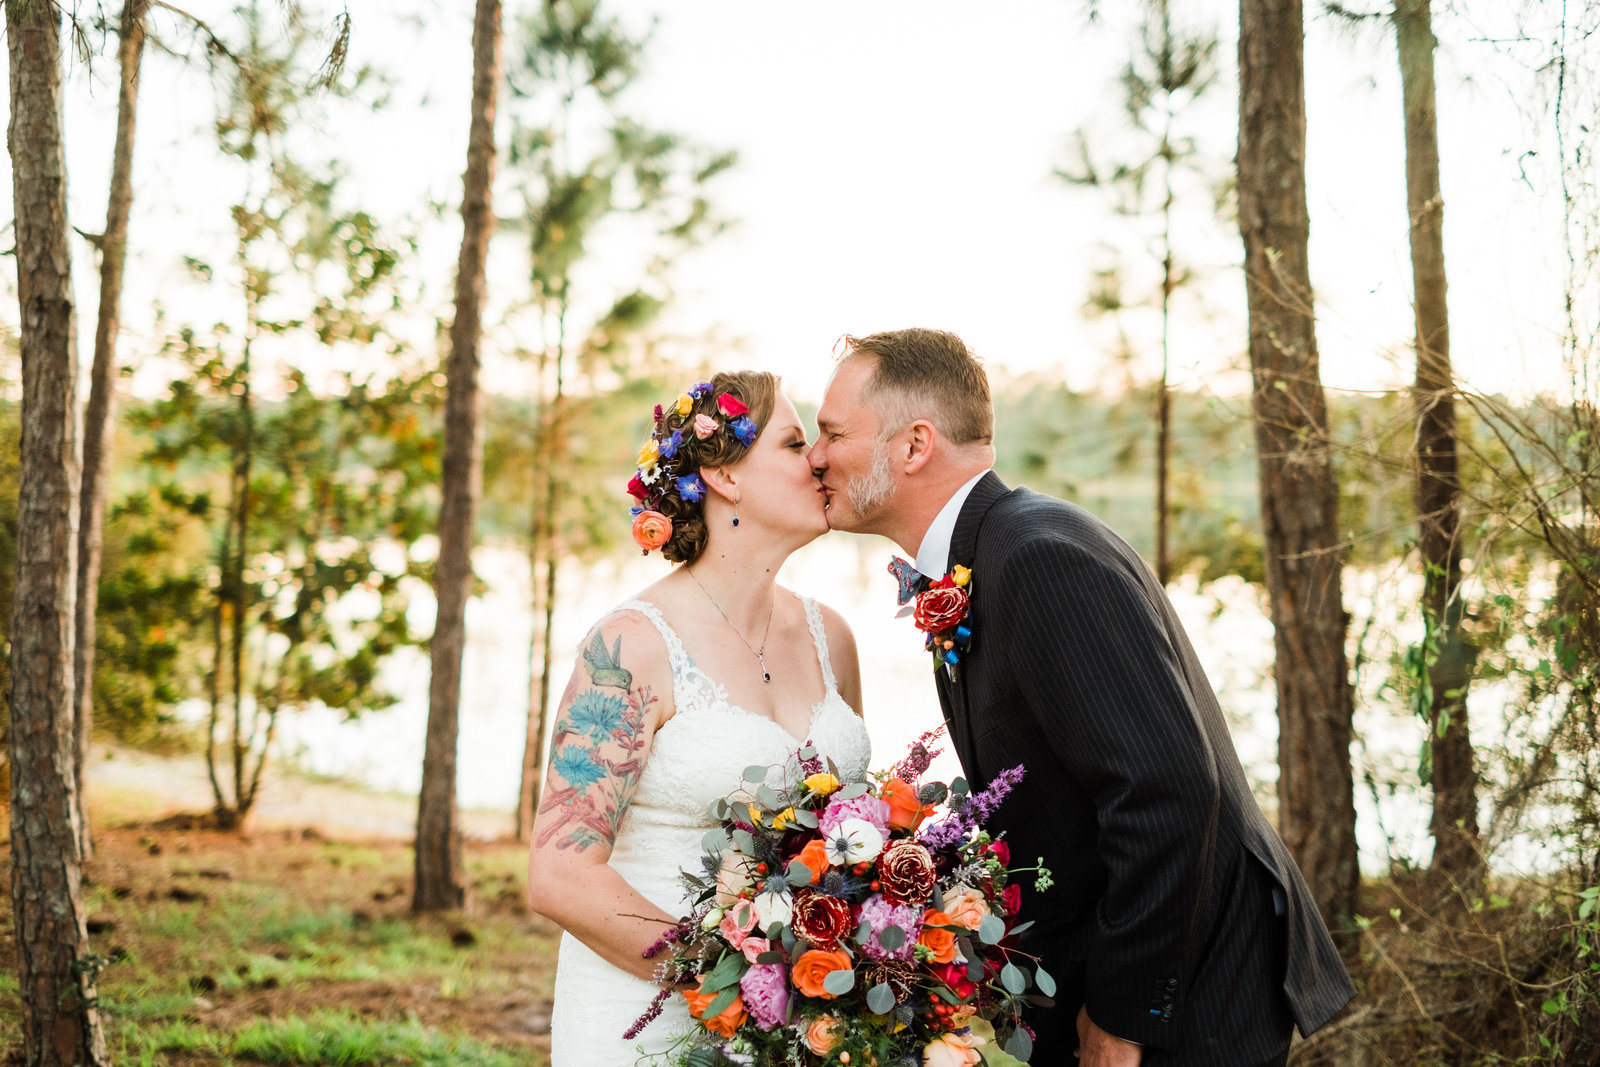 Bride and groom kiss on the lips at their wedding in Ocala National Forest